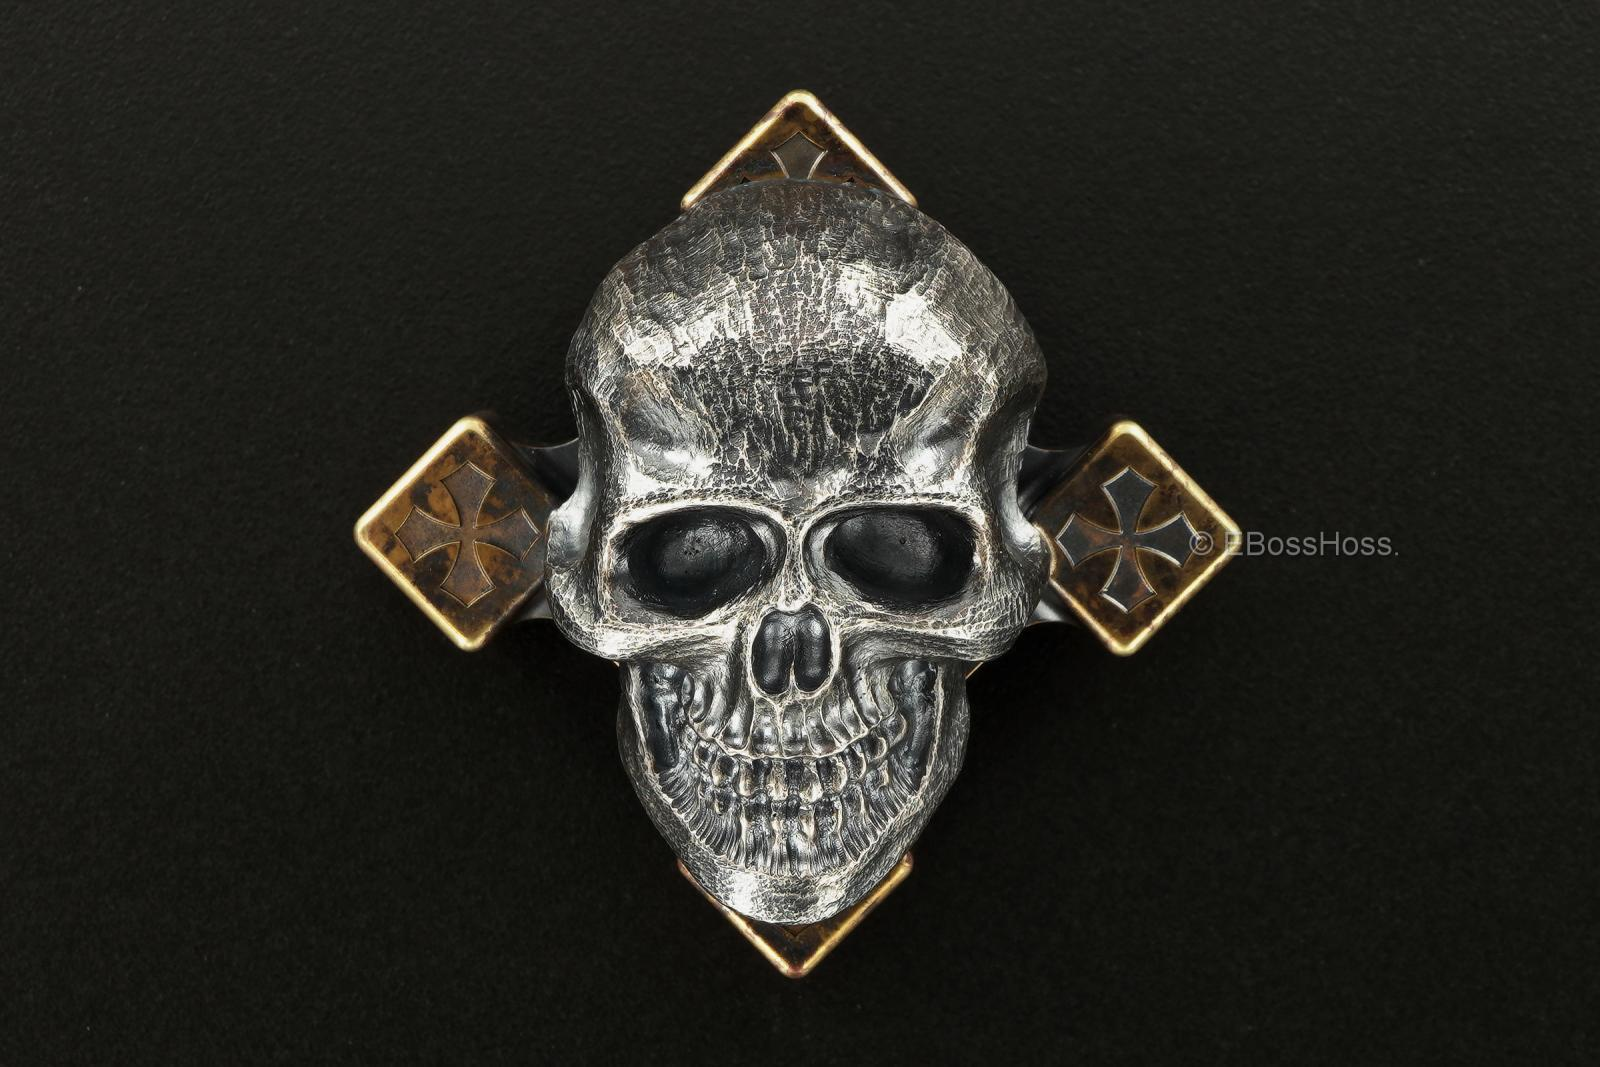 Steel Flame Giant Darkness Skull SLEDGE Ring Spin with XL 3-D Warrior Skull Slug